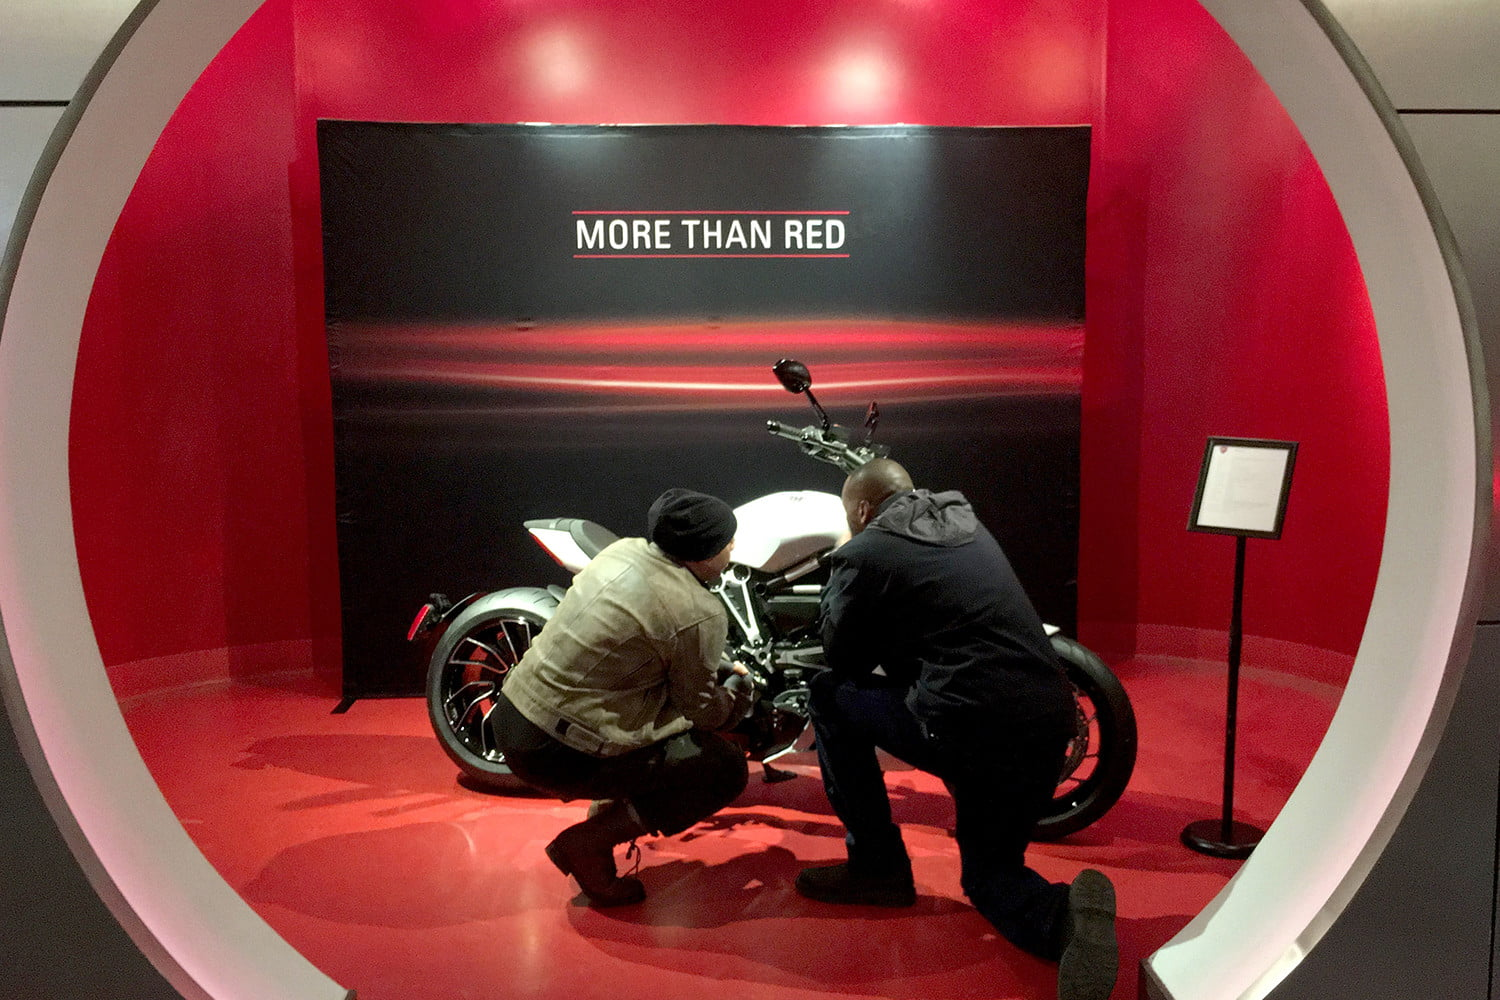 ducati 2018 motorcycle preview xdiavel s lookers